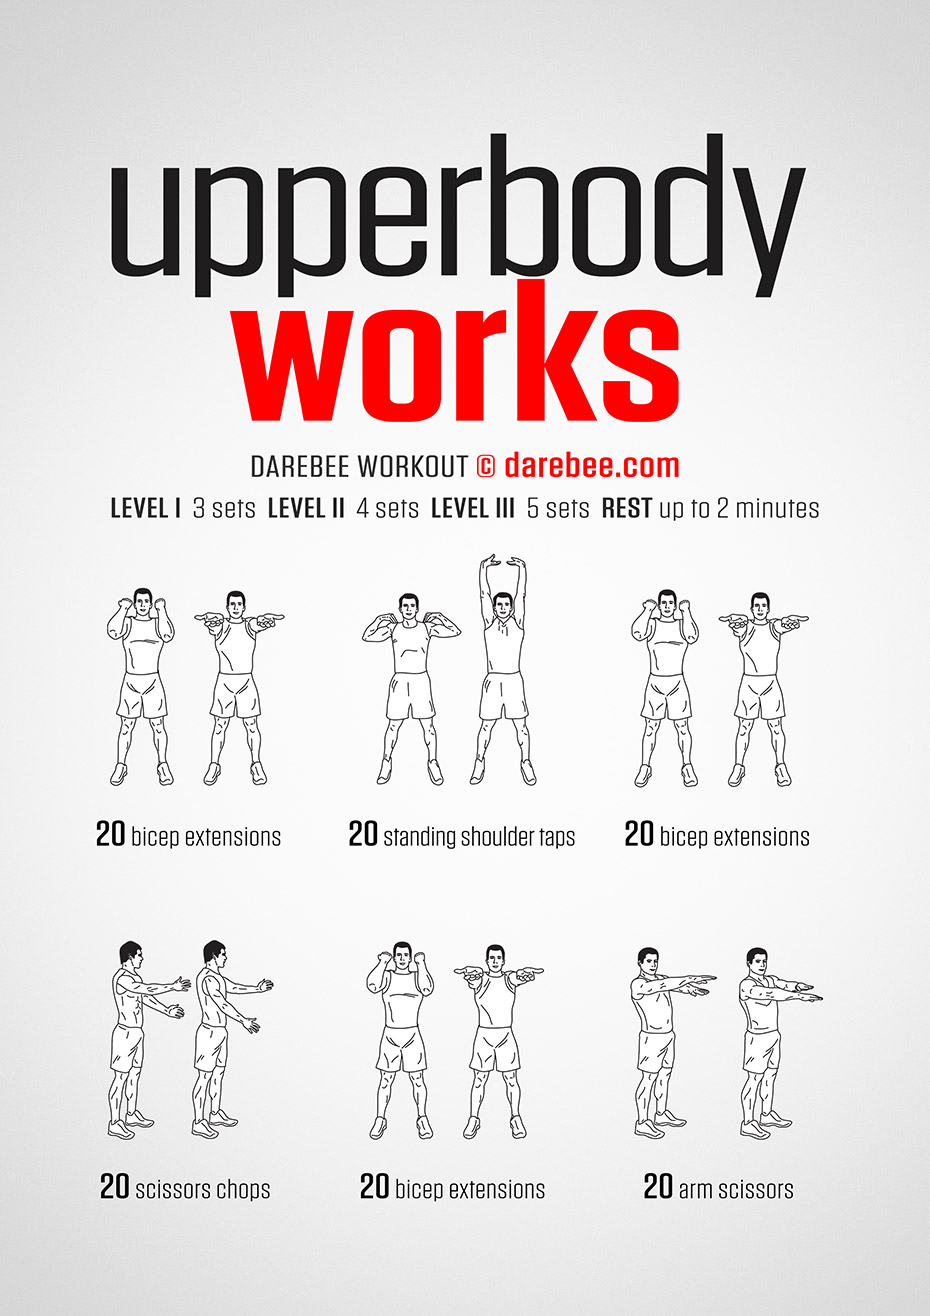 Upperbody Works Workout in 2020 (With images) Bodyweight